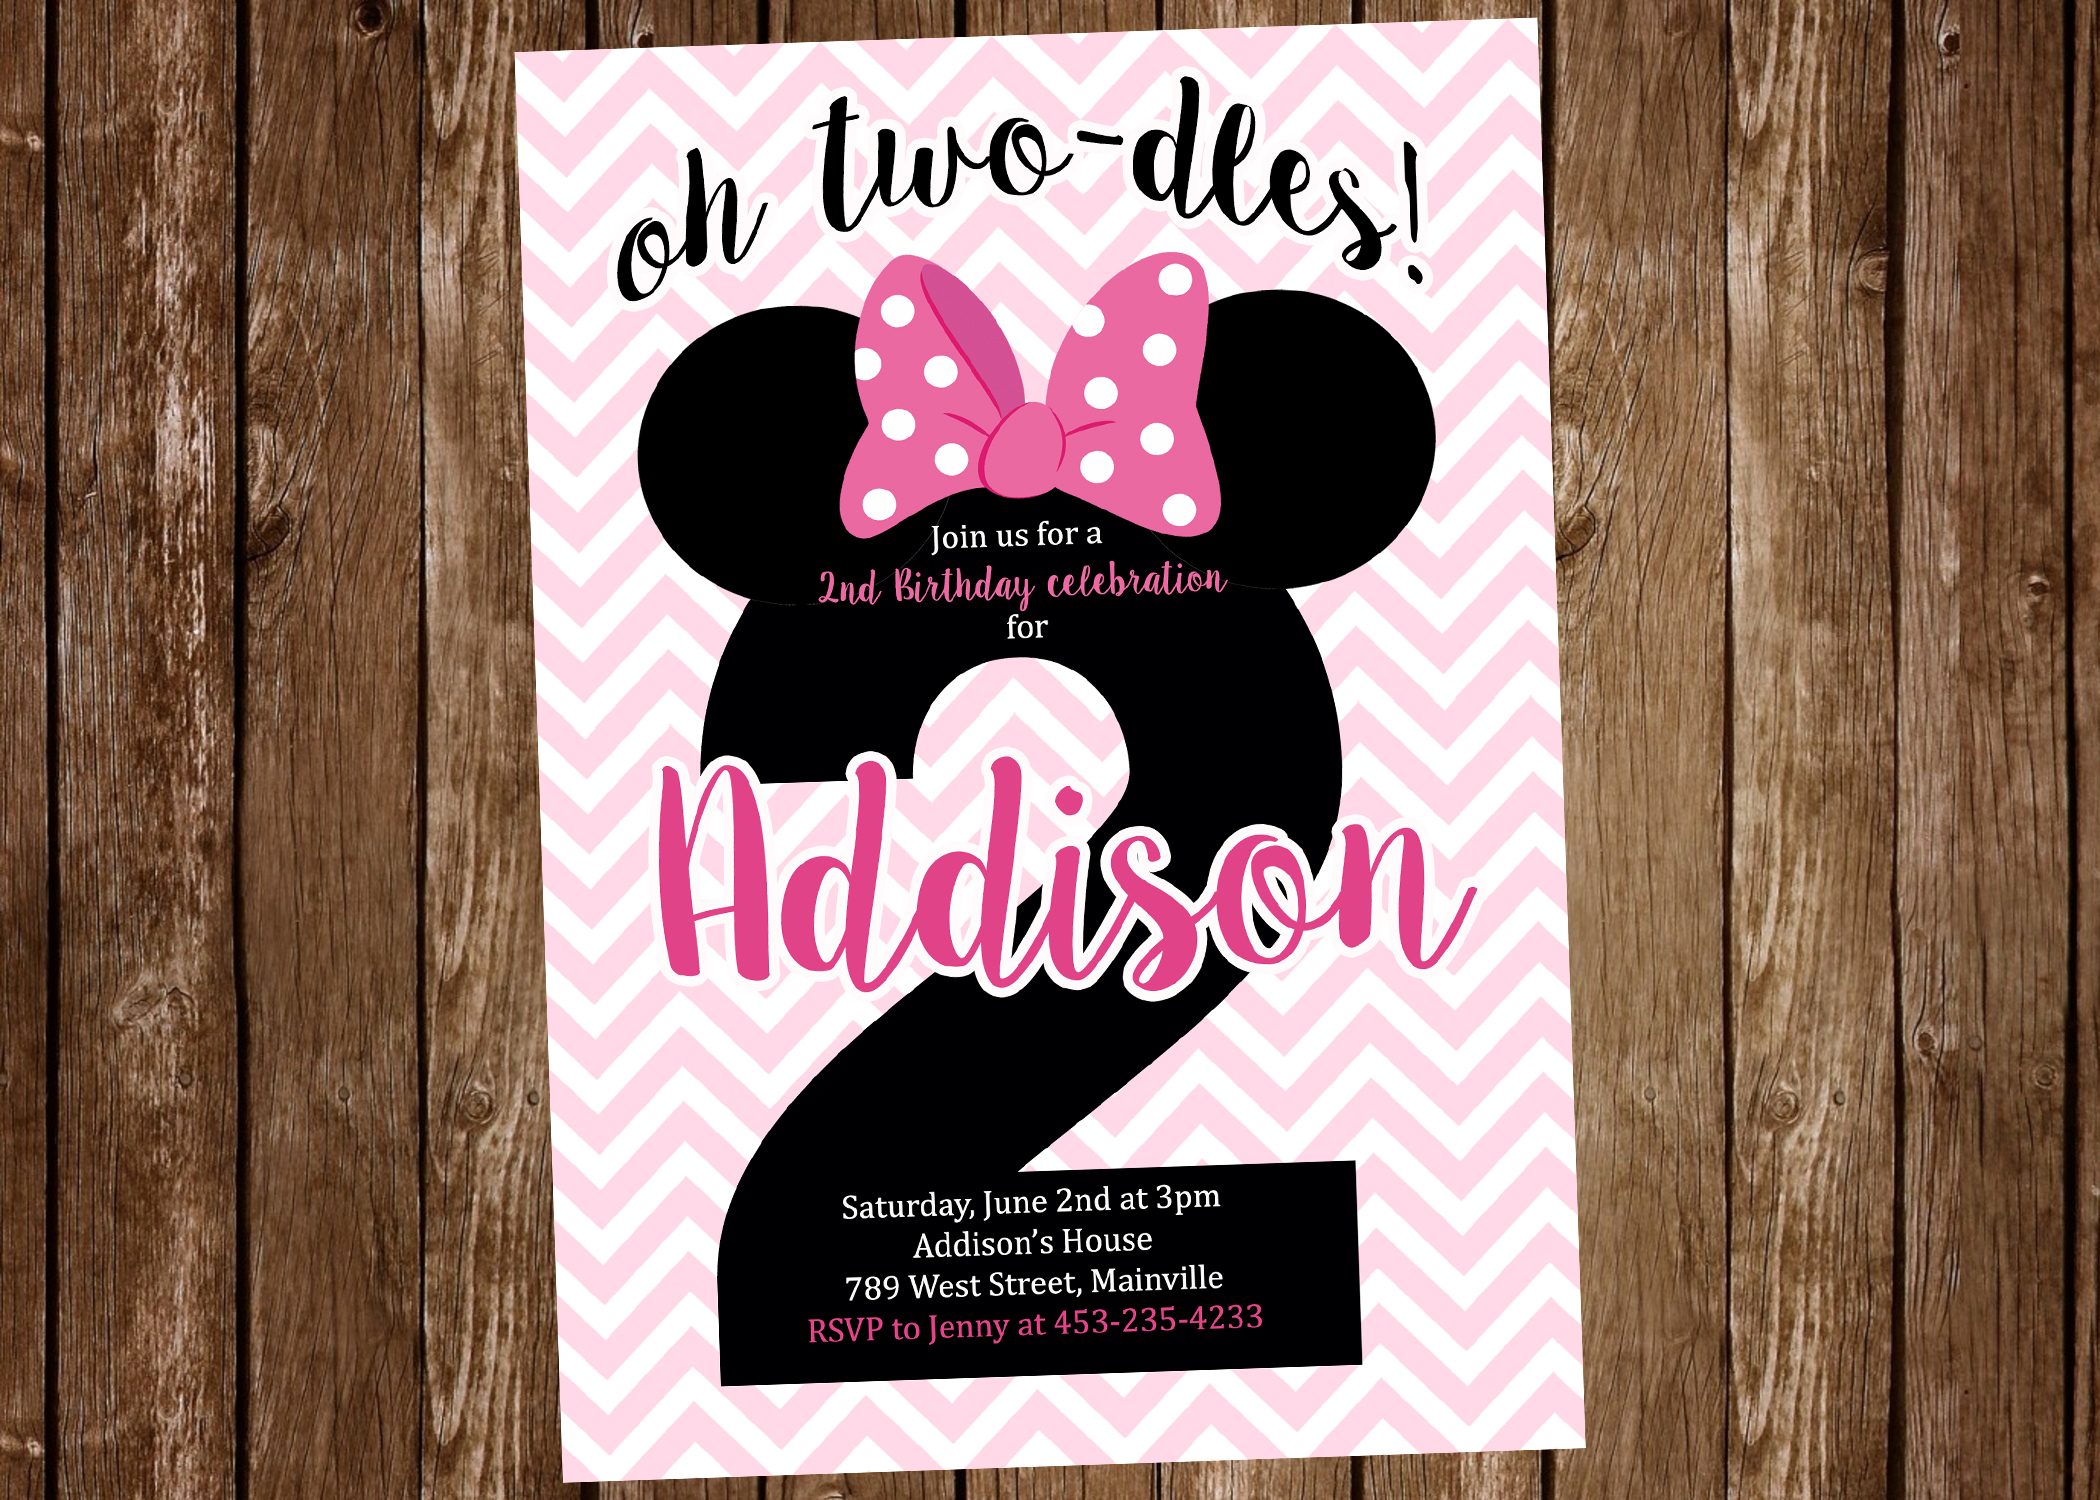 Minnie Mouse 2nd Birthday Two Odles Party Invitation